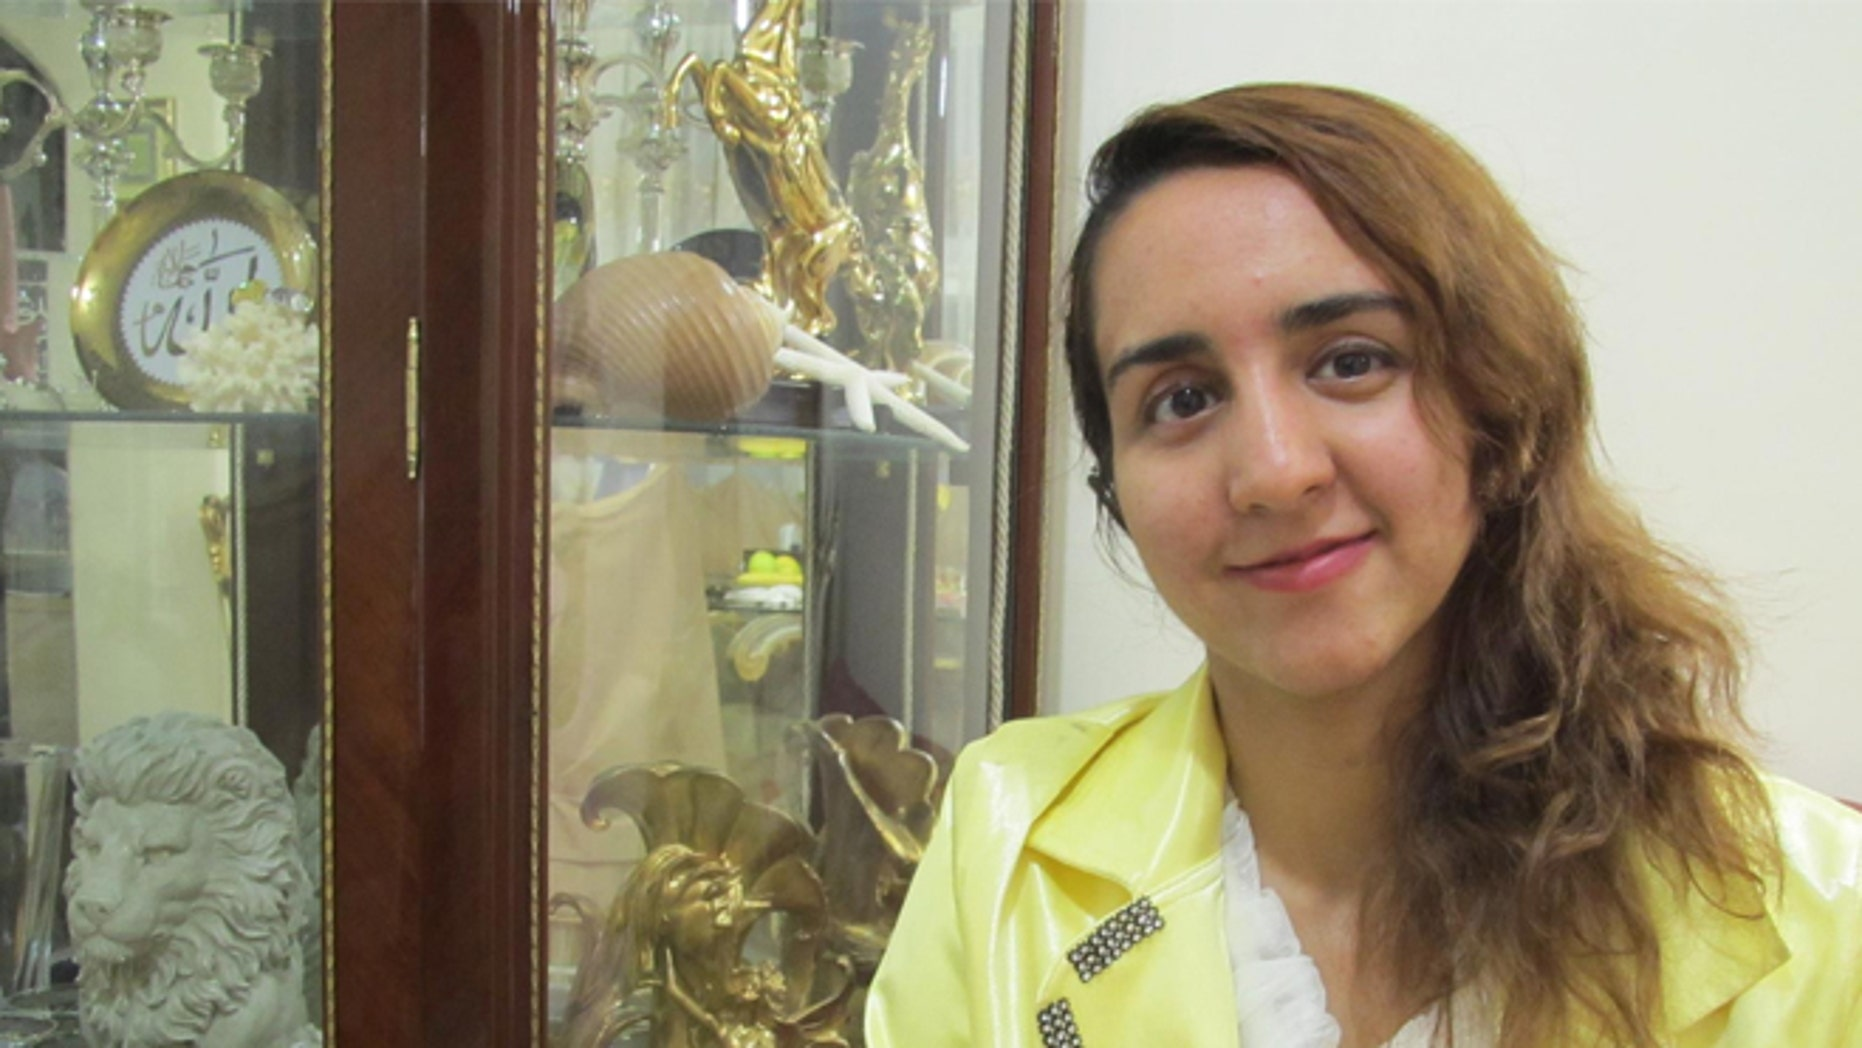 Sanaz Nazami, a vibrant 27-year-old native of Tehran, Iran, who could speak three languages, wanted to pursue an advanced degree in engineering. (AP Photo/Courtesy Sara Nezami)